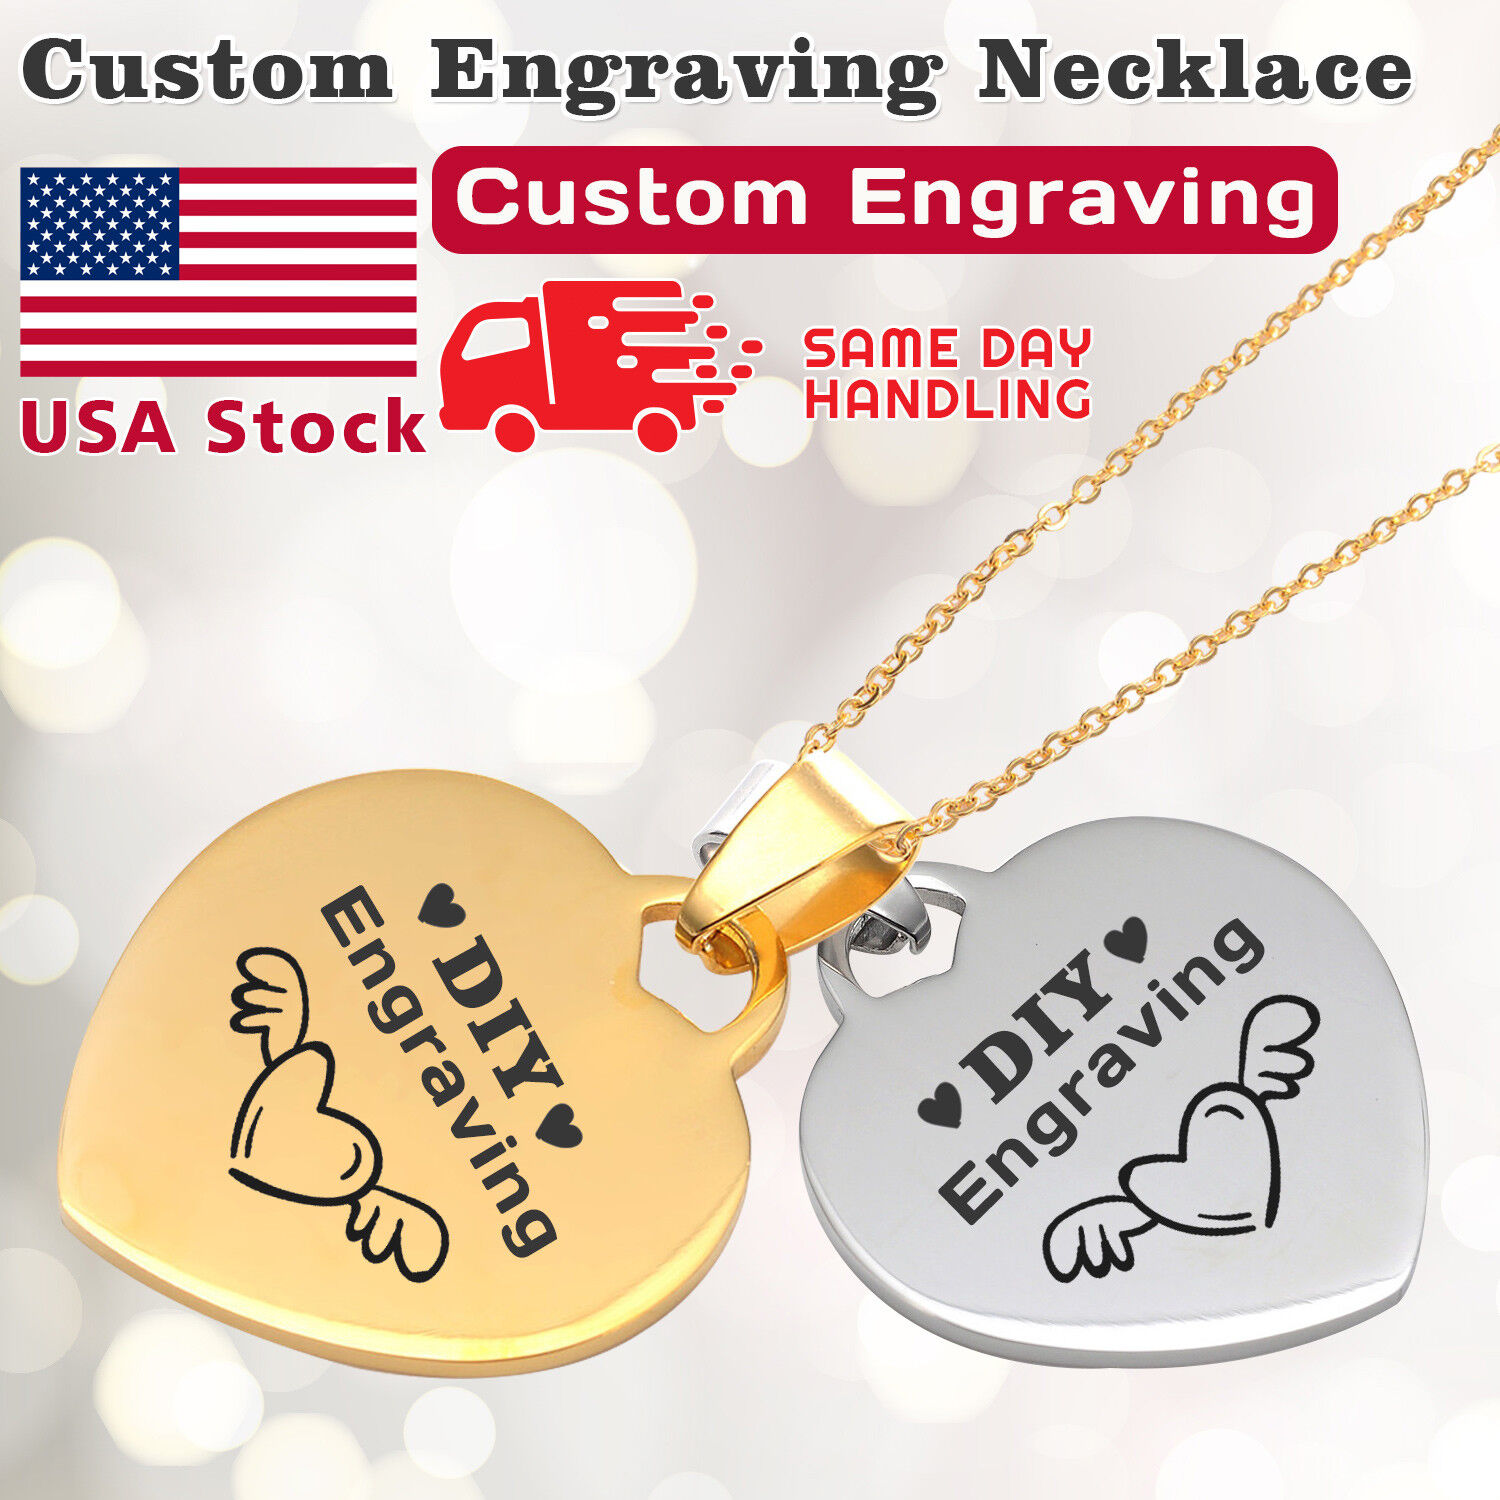 Personalized Engraved Custom Your Name Stainless Steel Necklace Pendant Jewelry Fashion Jewelry